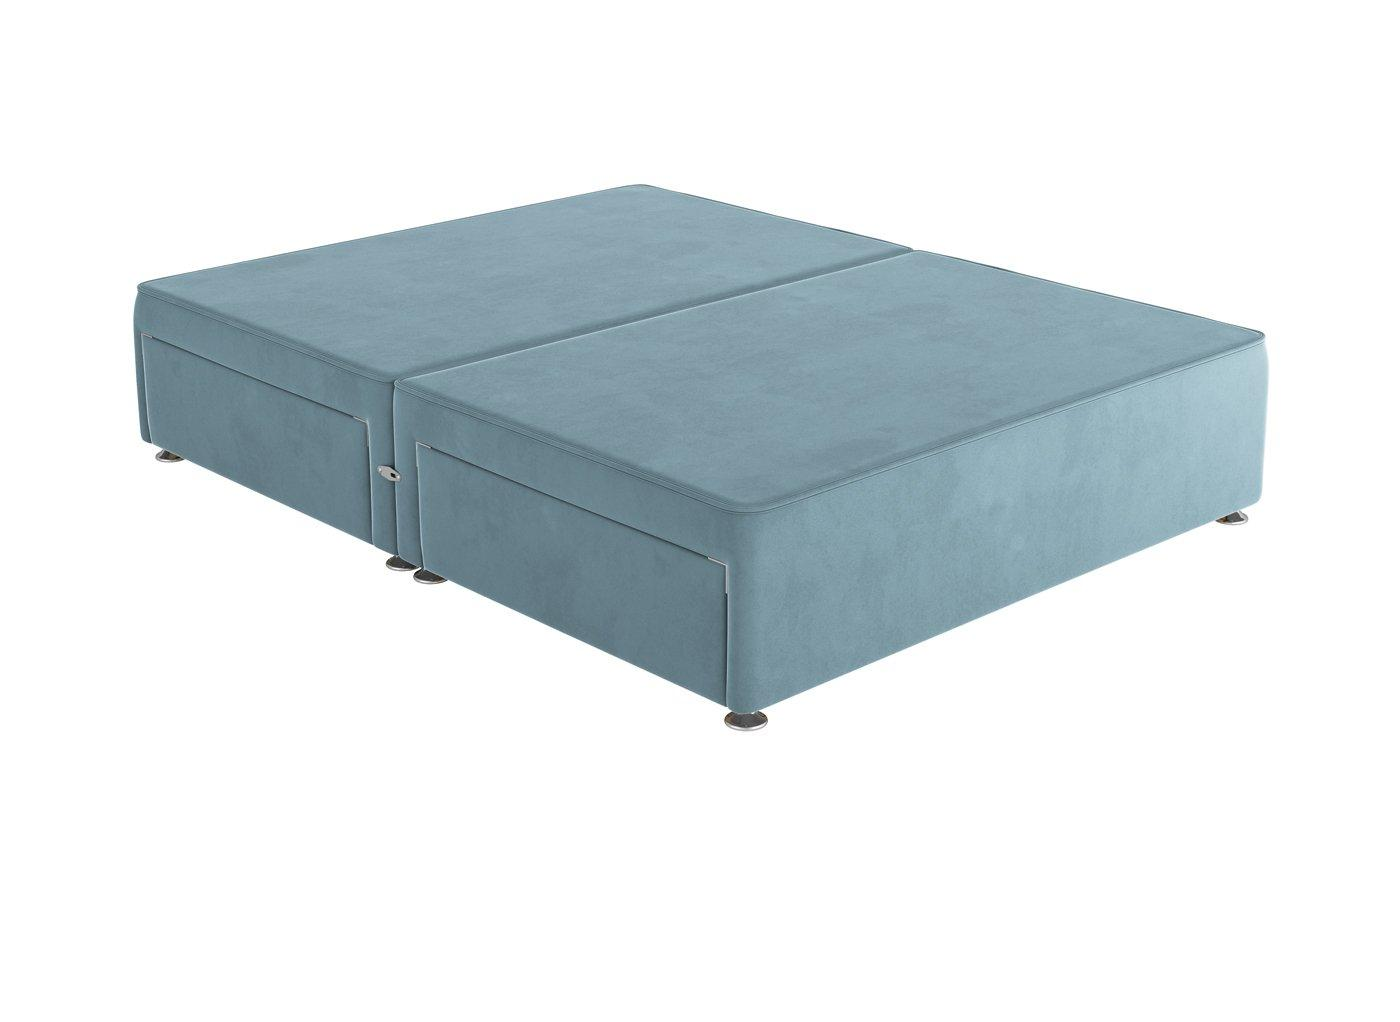 Sleepeezee K P/T 4 Drw Base Plush Sky 5'0 King BLUE